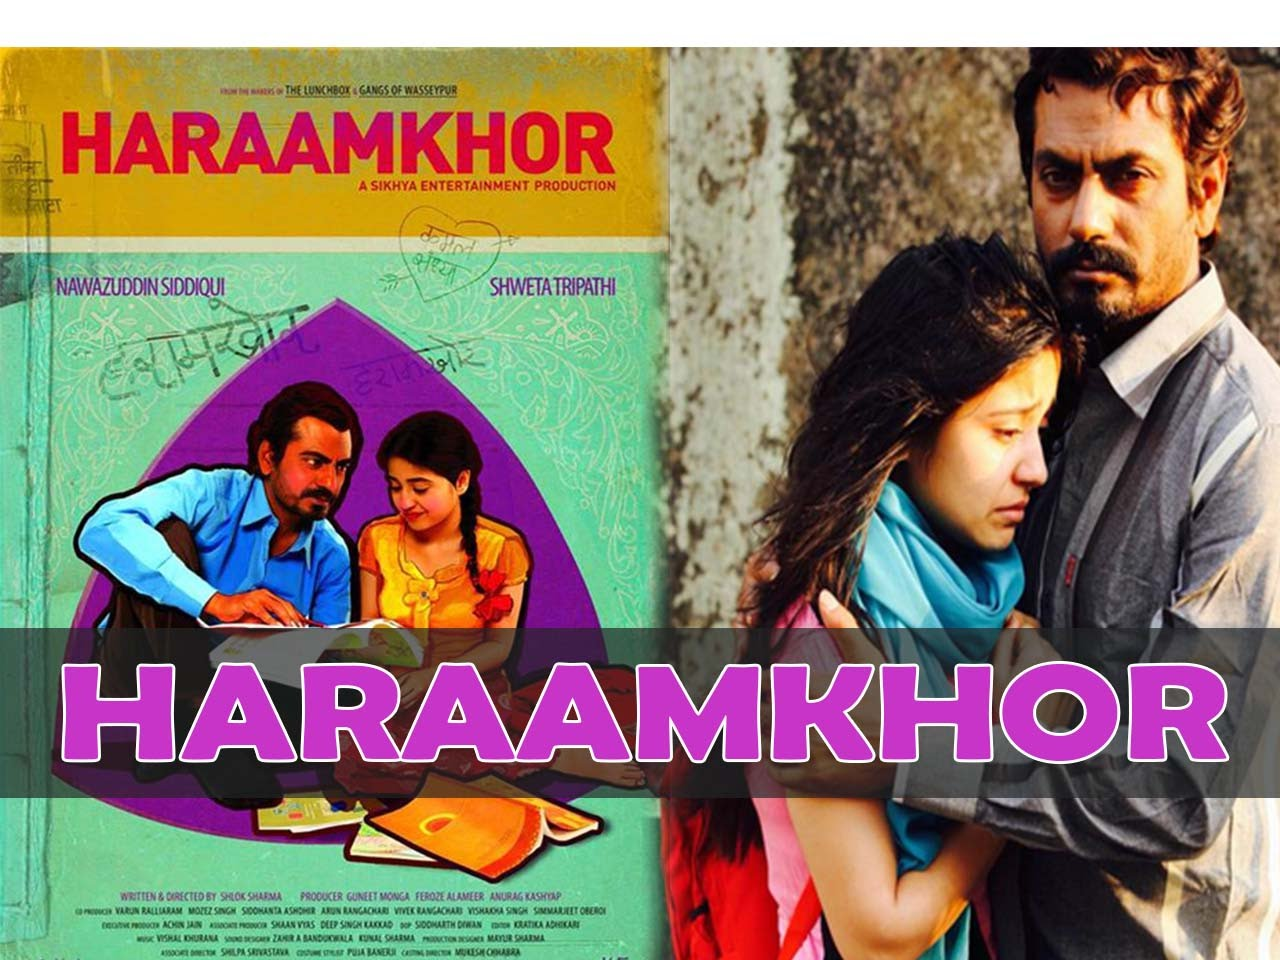 Haraamkhor 2017 movie review